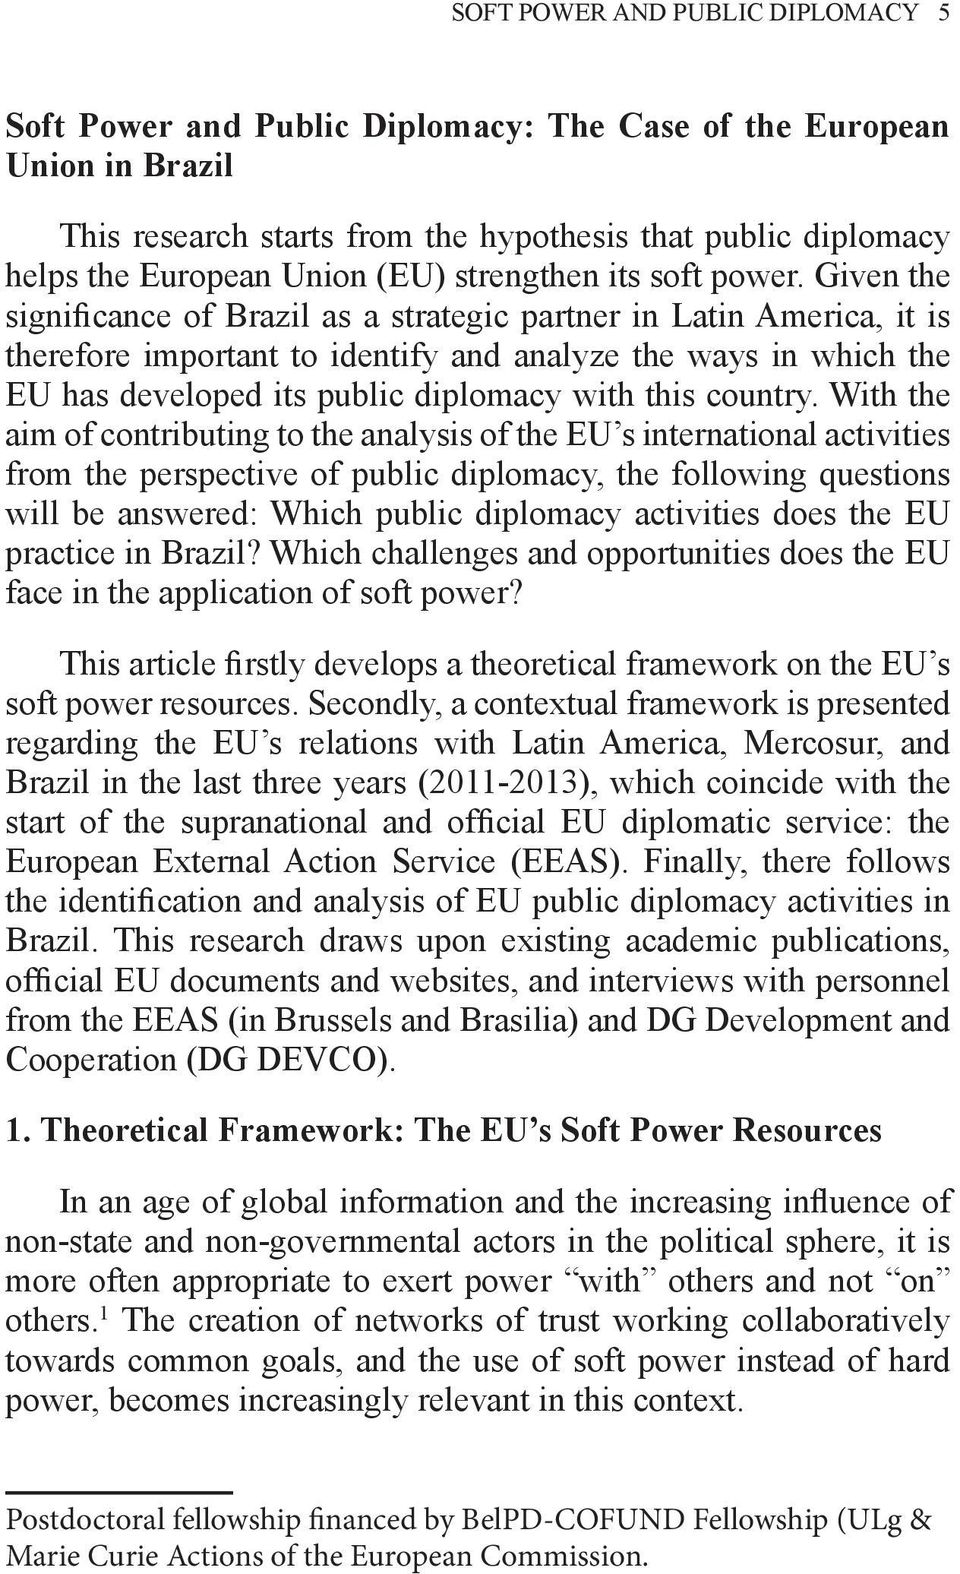 Given the significance of Brazil as a strategic partner in Latin America, it is therefore important to identify and analyze the ways in which the EU has developed its public diplomacy with this